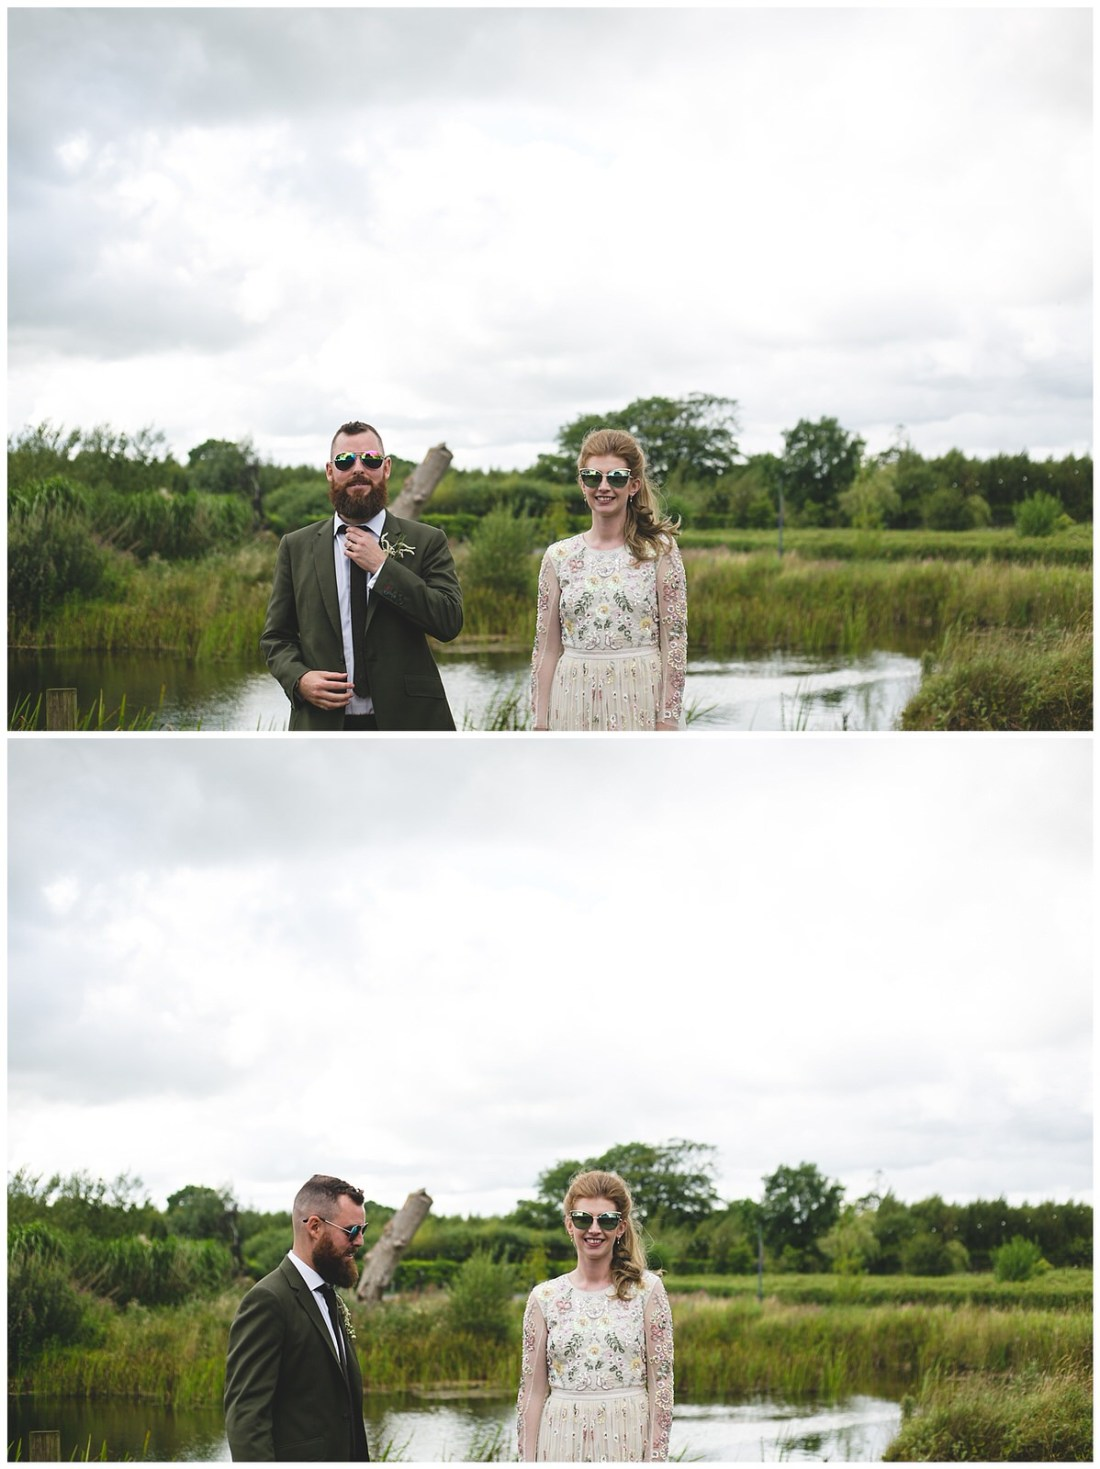 Wild things wed photography - Lakeside portrait